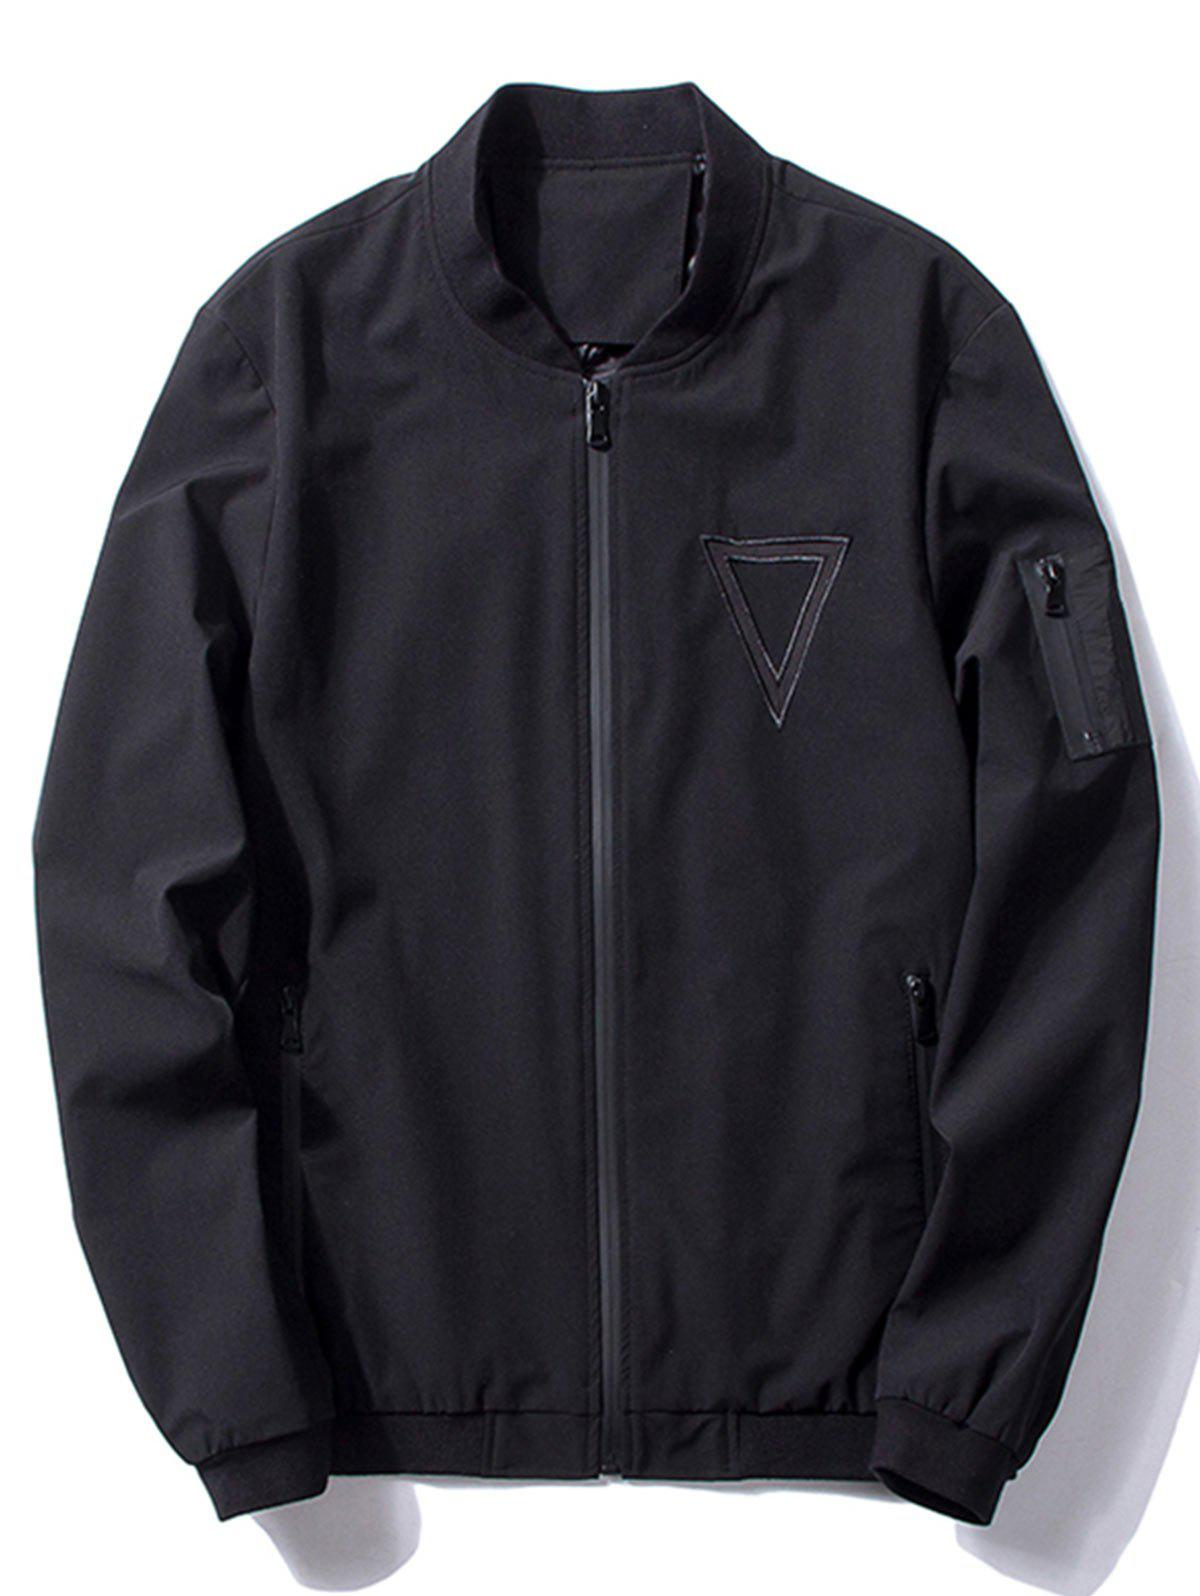 Stand Collar Triangle Embroidered Bomber Jacket 224516108